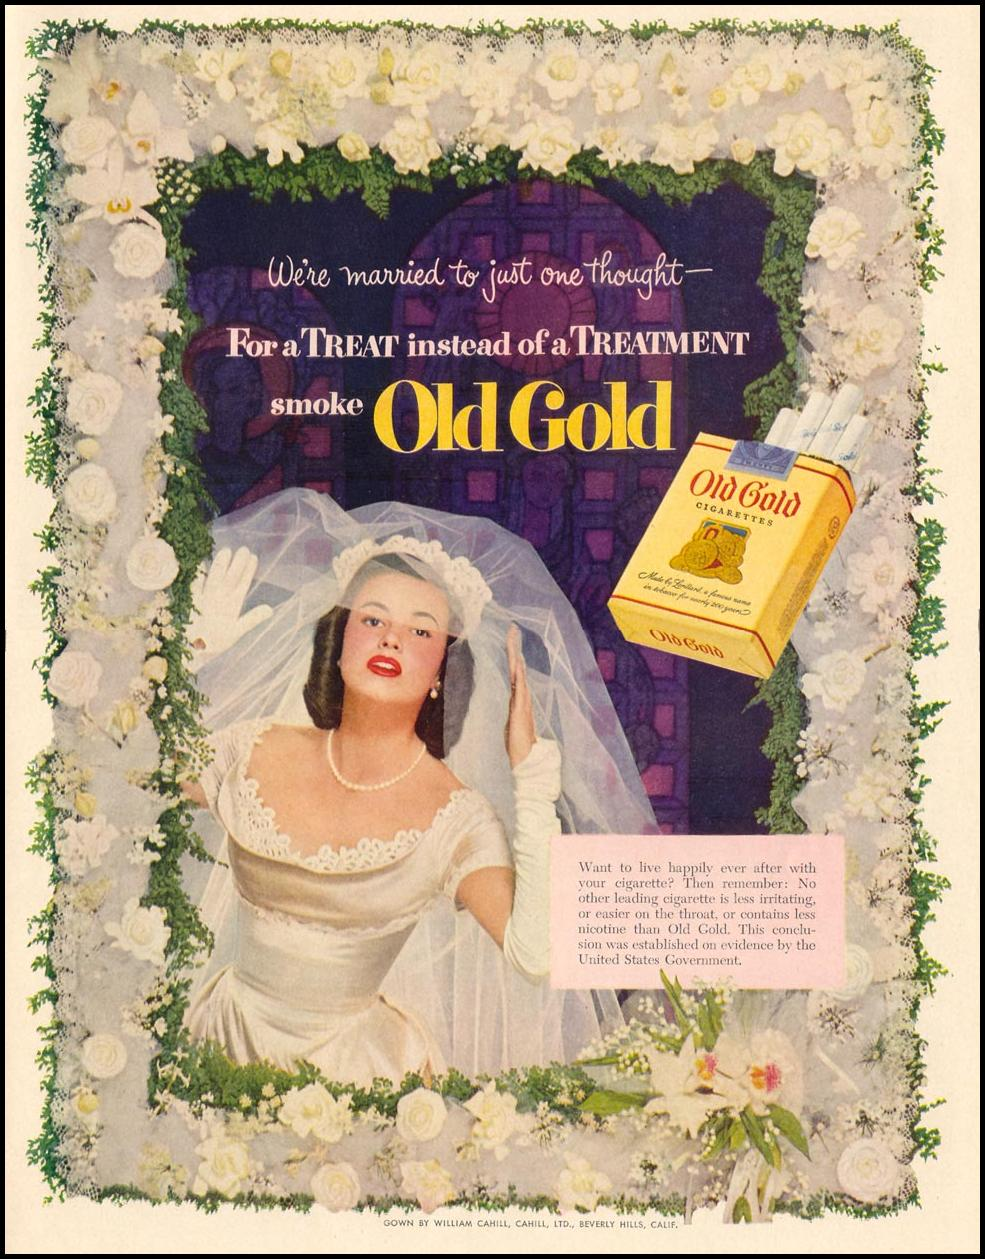 OLD GOLD CIGARETTES LIFE 06/16/1952 p. 51